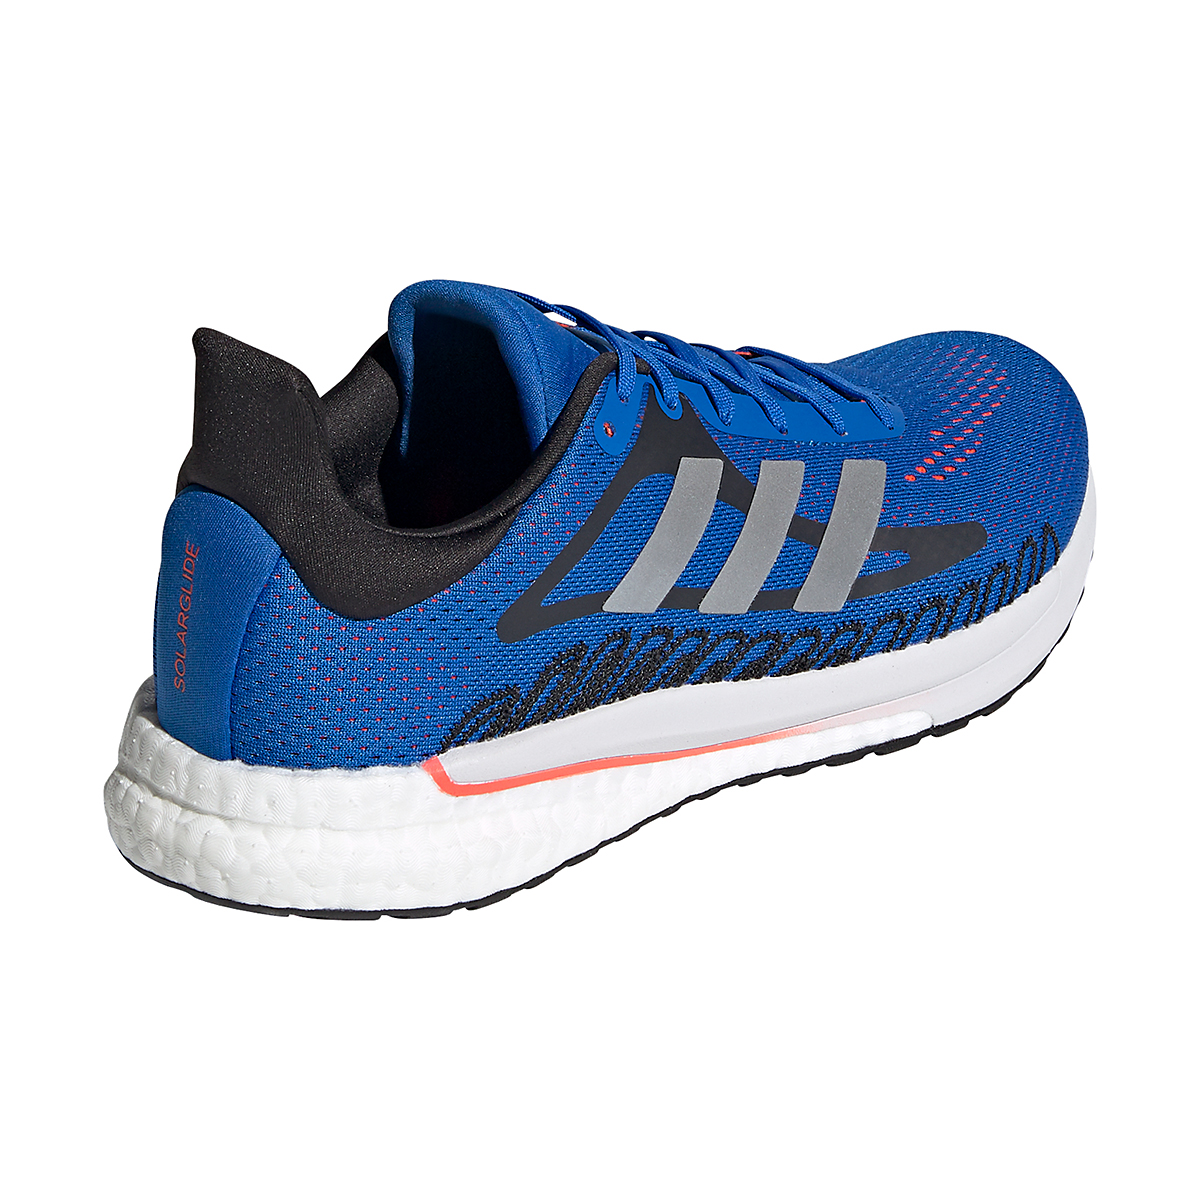 Men's Adidas Solarglide 3 Running Shoe - Color: Football Blue/Silver Metallic/Solar Red - Size: 6.5 - Width: Regular, Football Blue/Silver Metallic/Solar Red, large, image 4